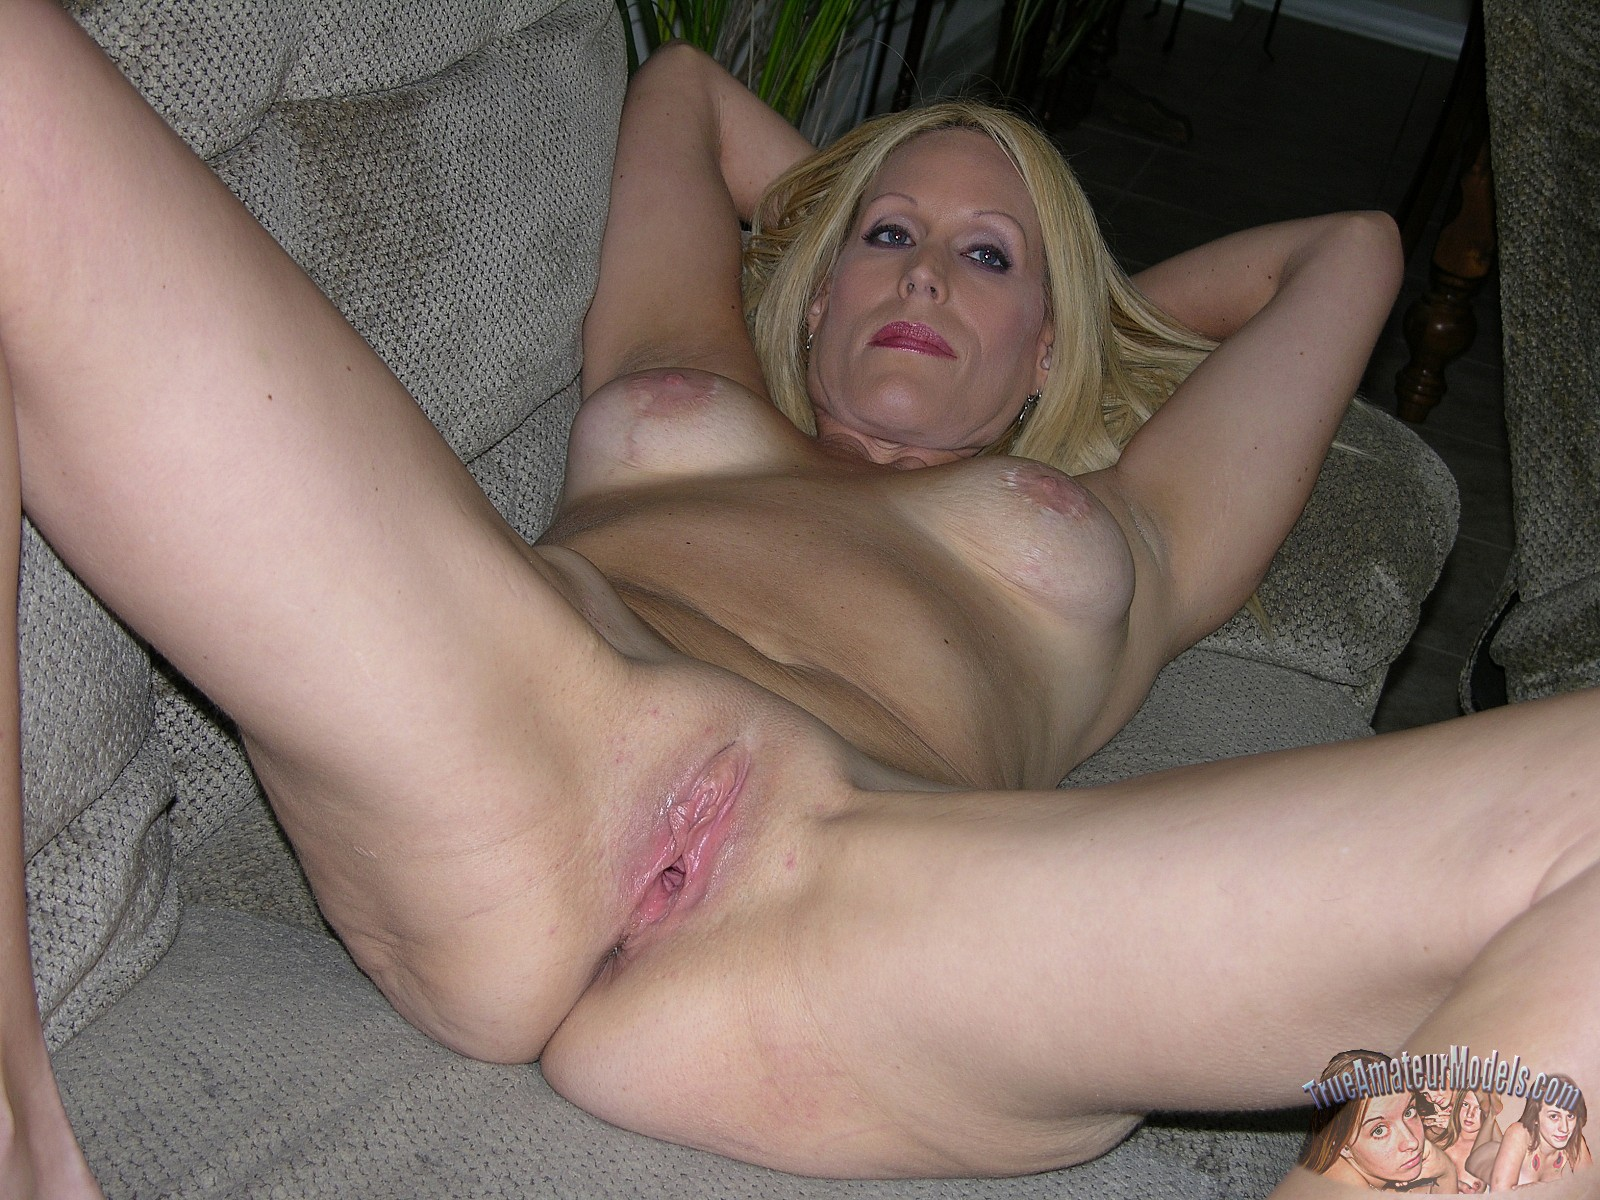 Nude women in their fifties can